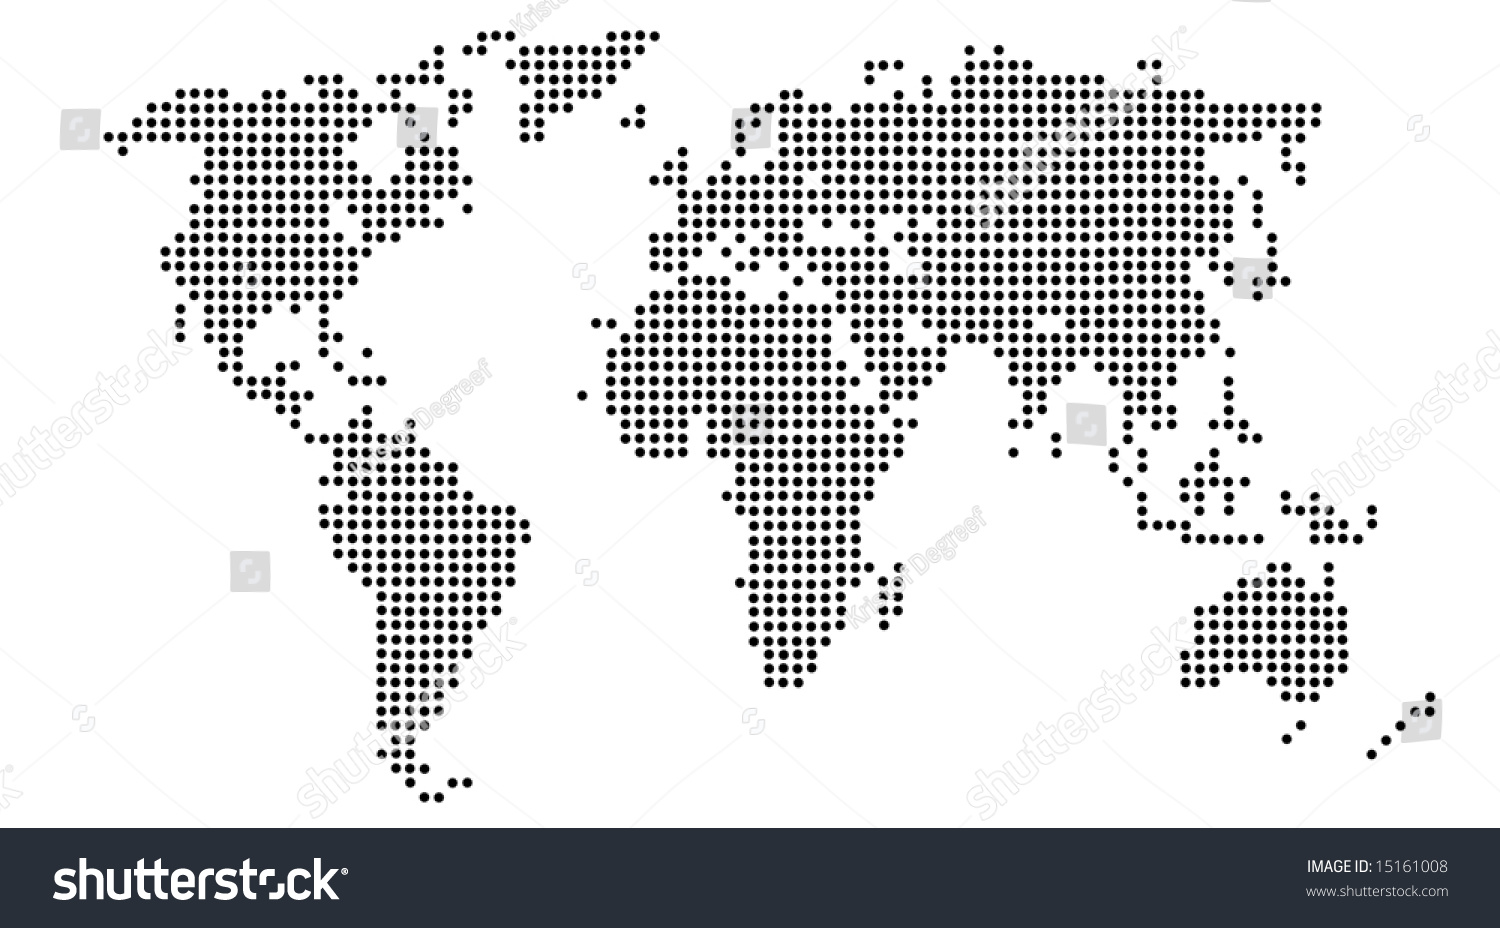 Map world continents made black white stock illustration 15161008 a map of the world with the continents made up of black and white dots gumiabroncs Gallery